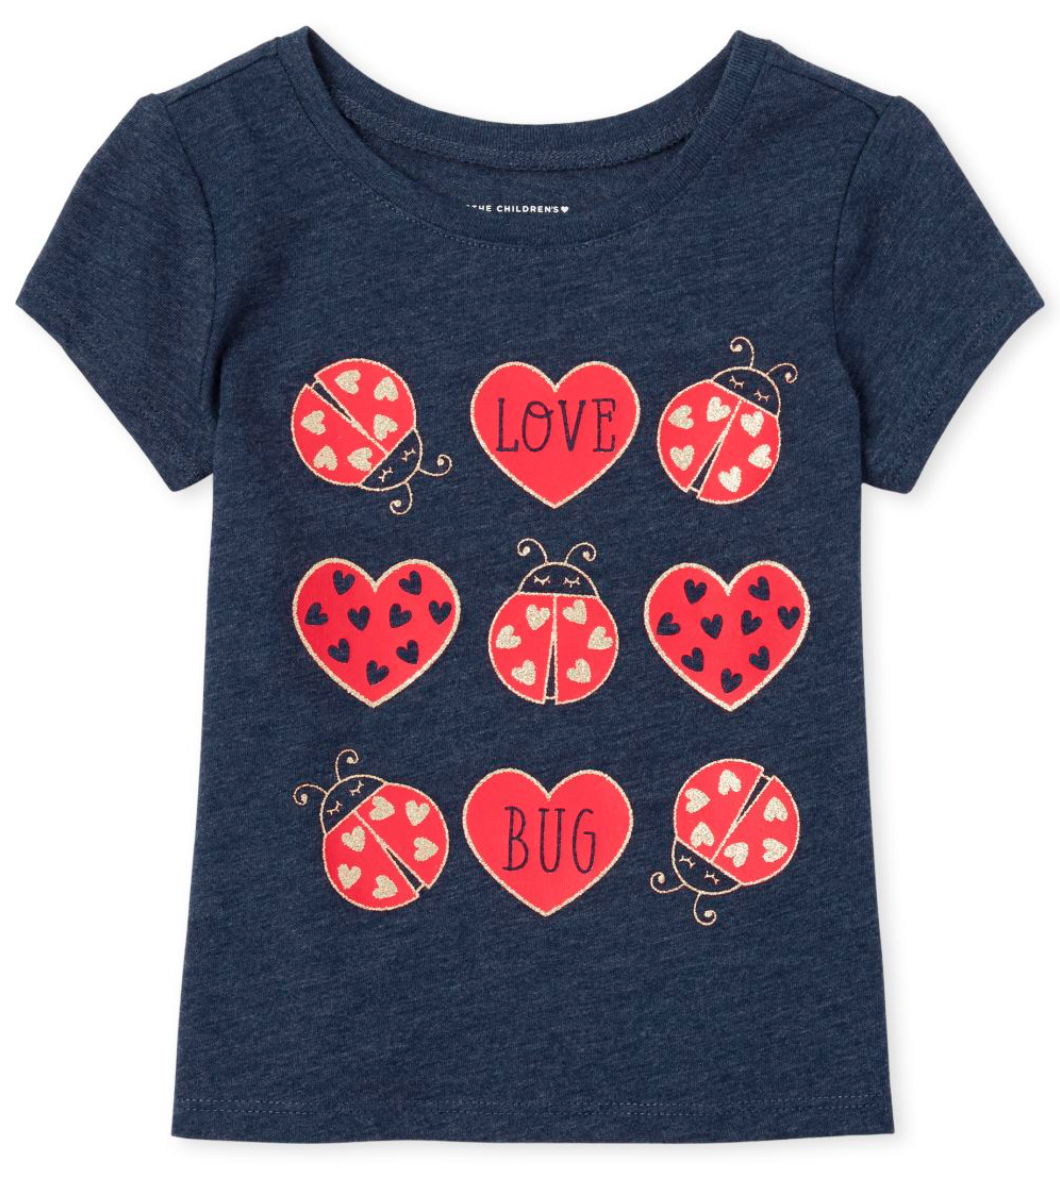 childrens place tees